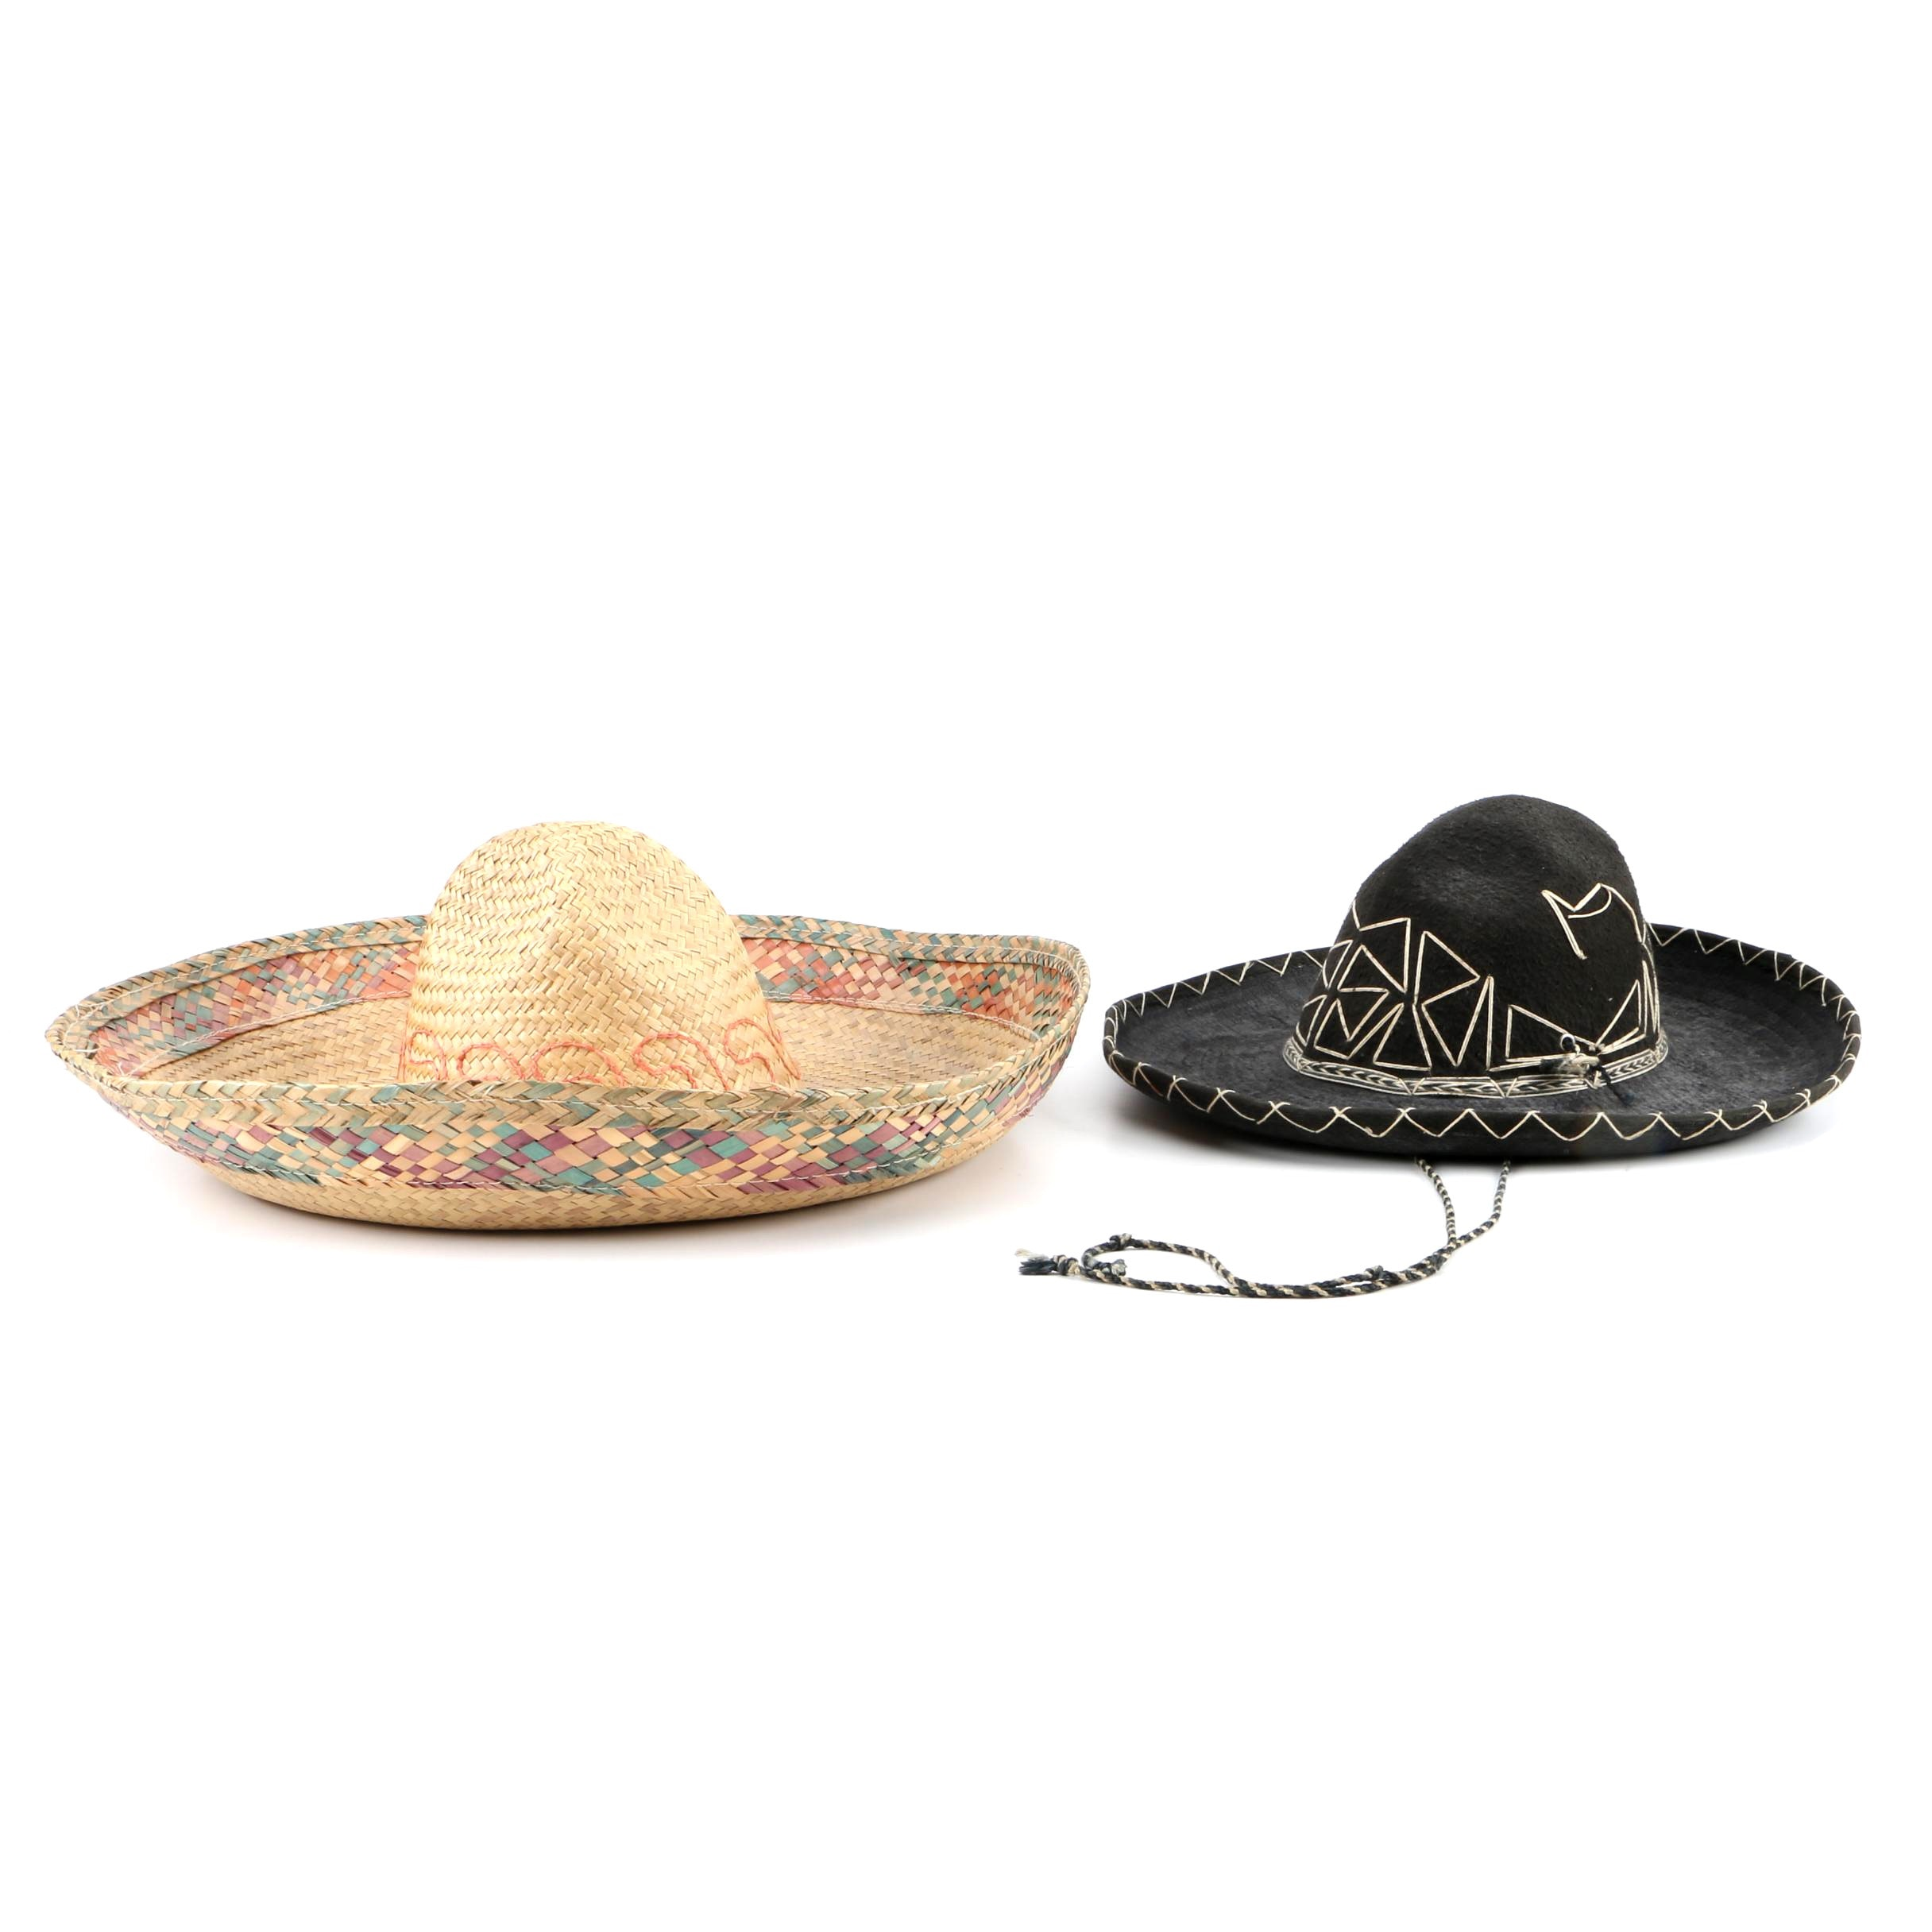 Felt and Straw Mexican Sombreros